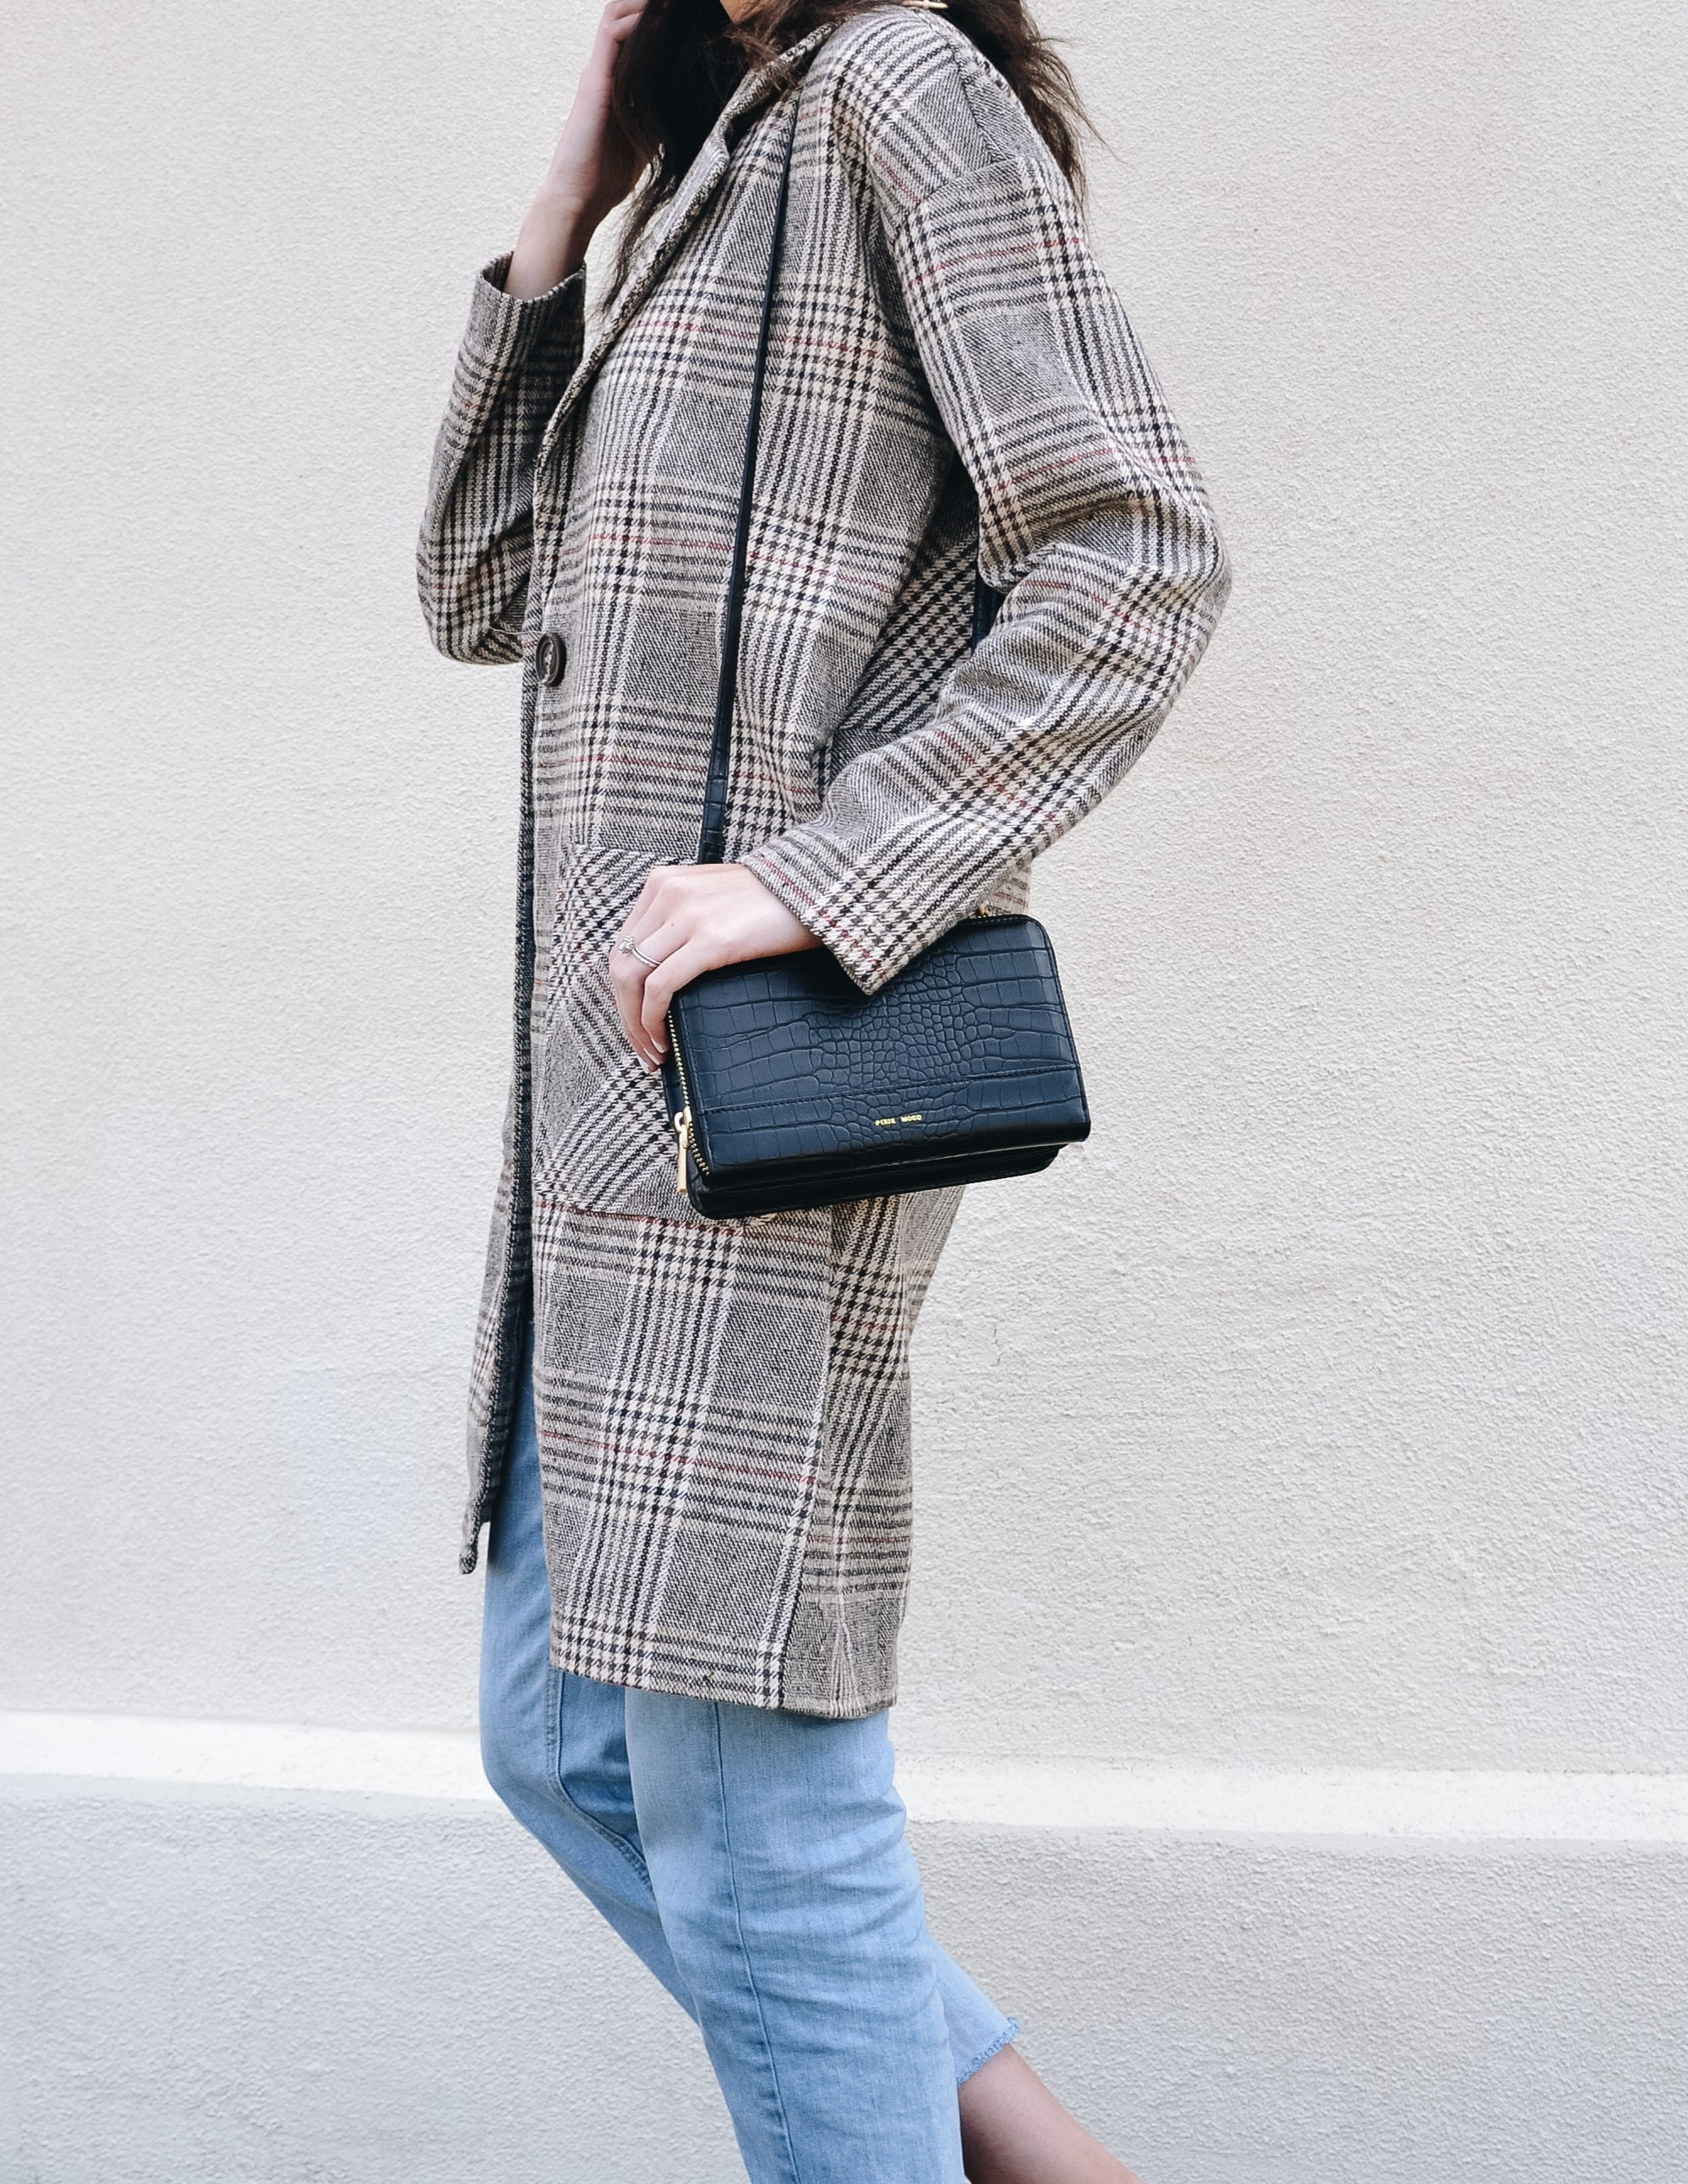 Model showing off the black crocodile jane purse in plaid coat and denim